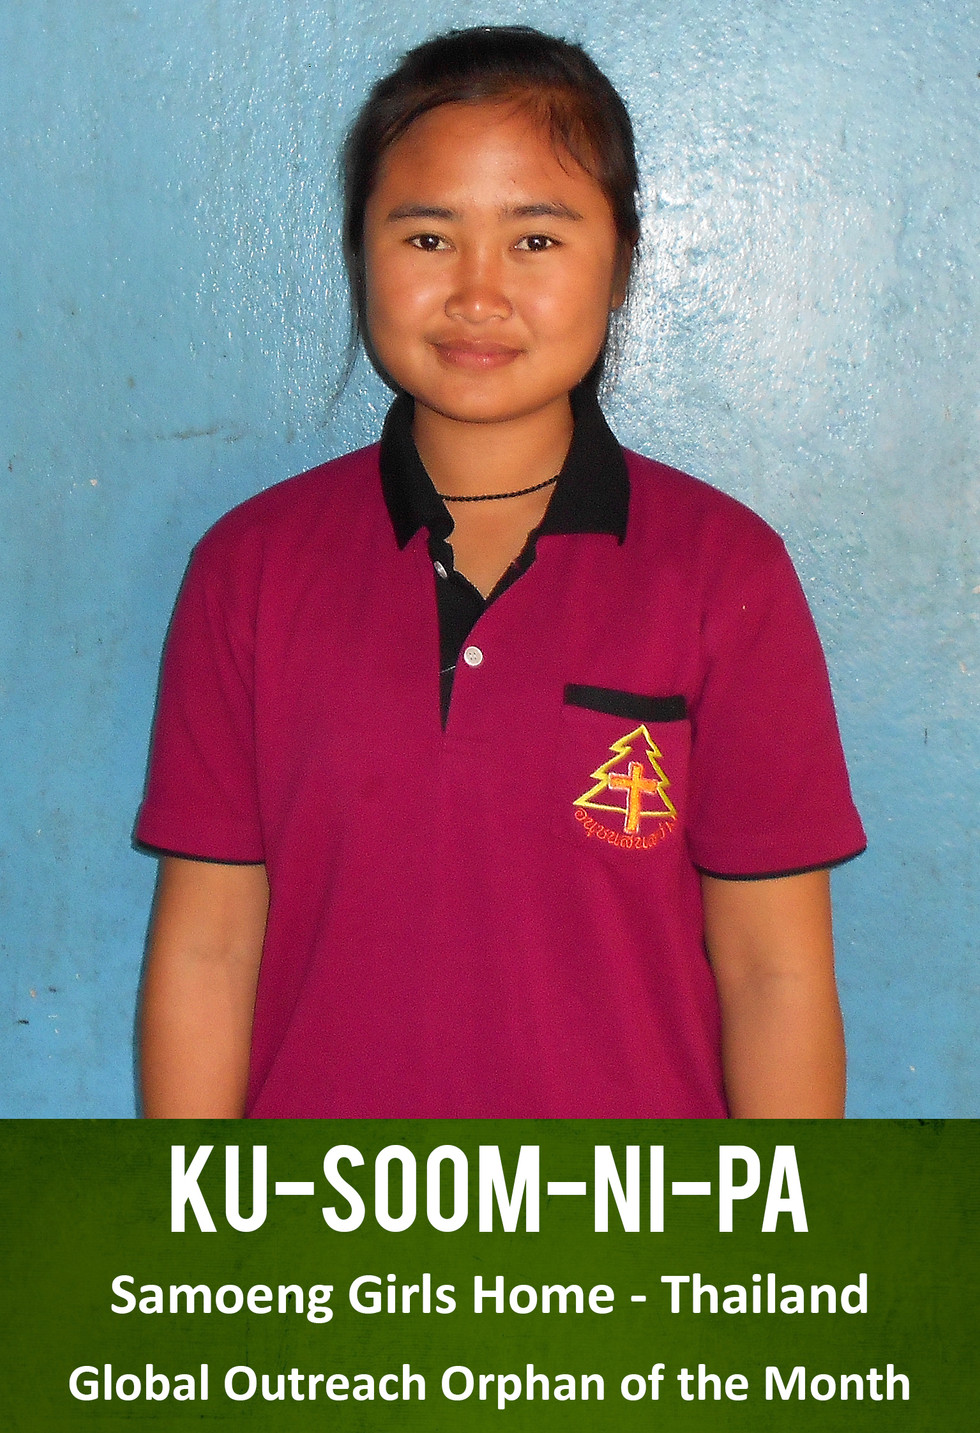 Ku-soom-ni-pa Is Our Orphan Of The Month